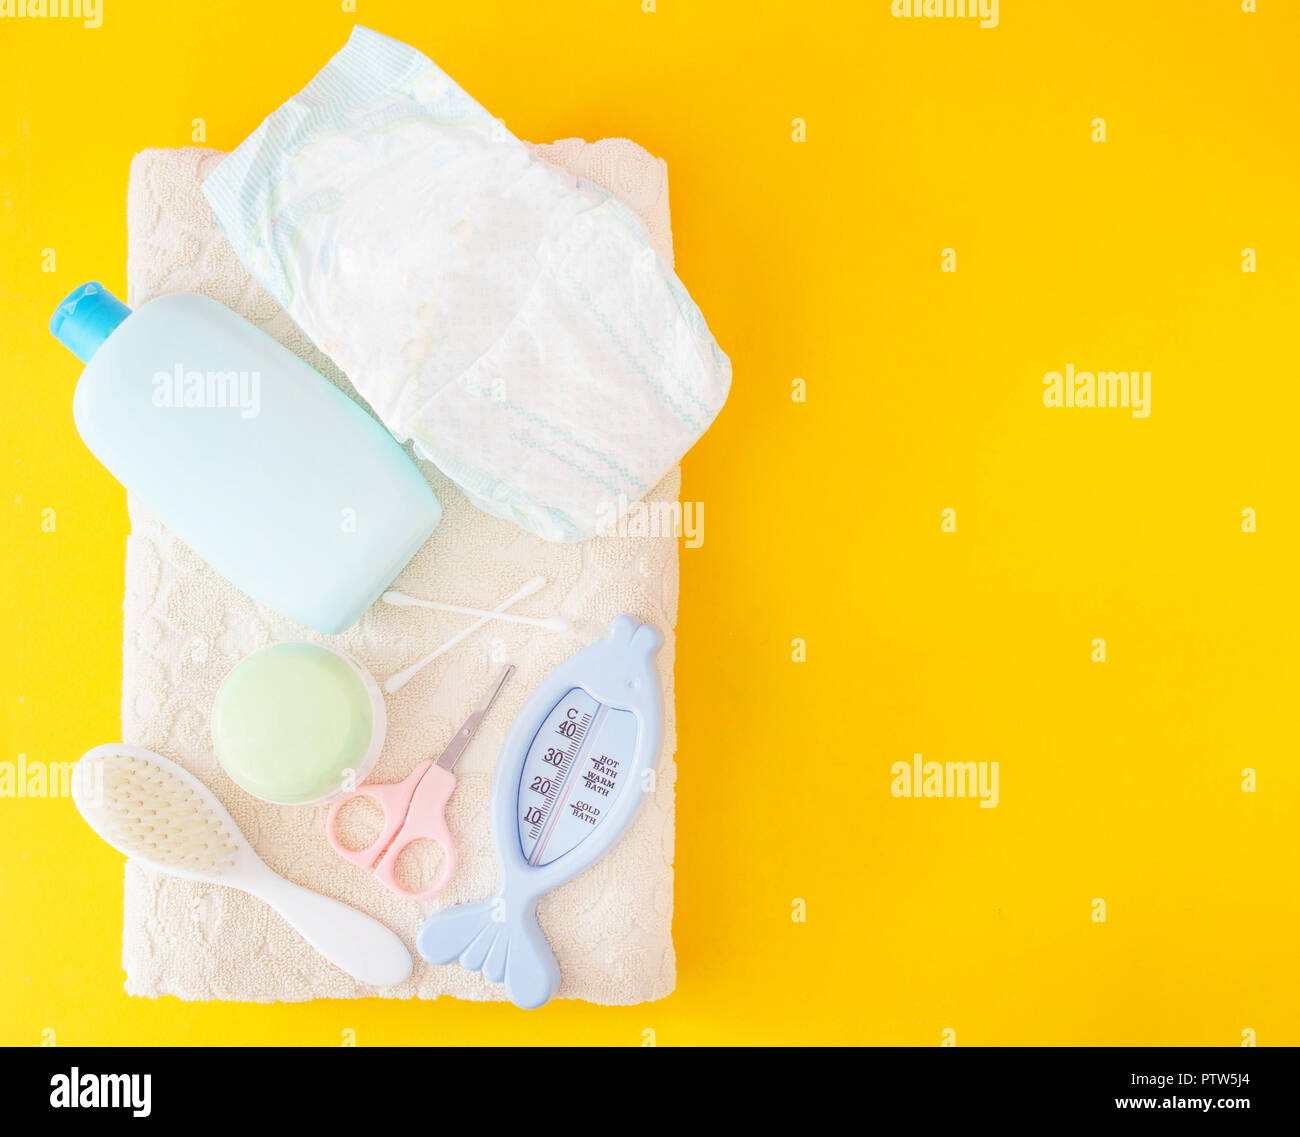 Baby bathing accessories, diaper, yellow background - Stock Image